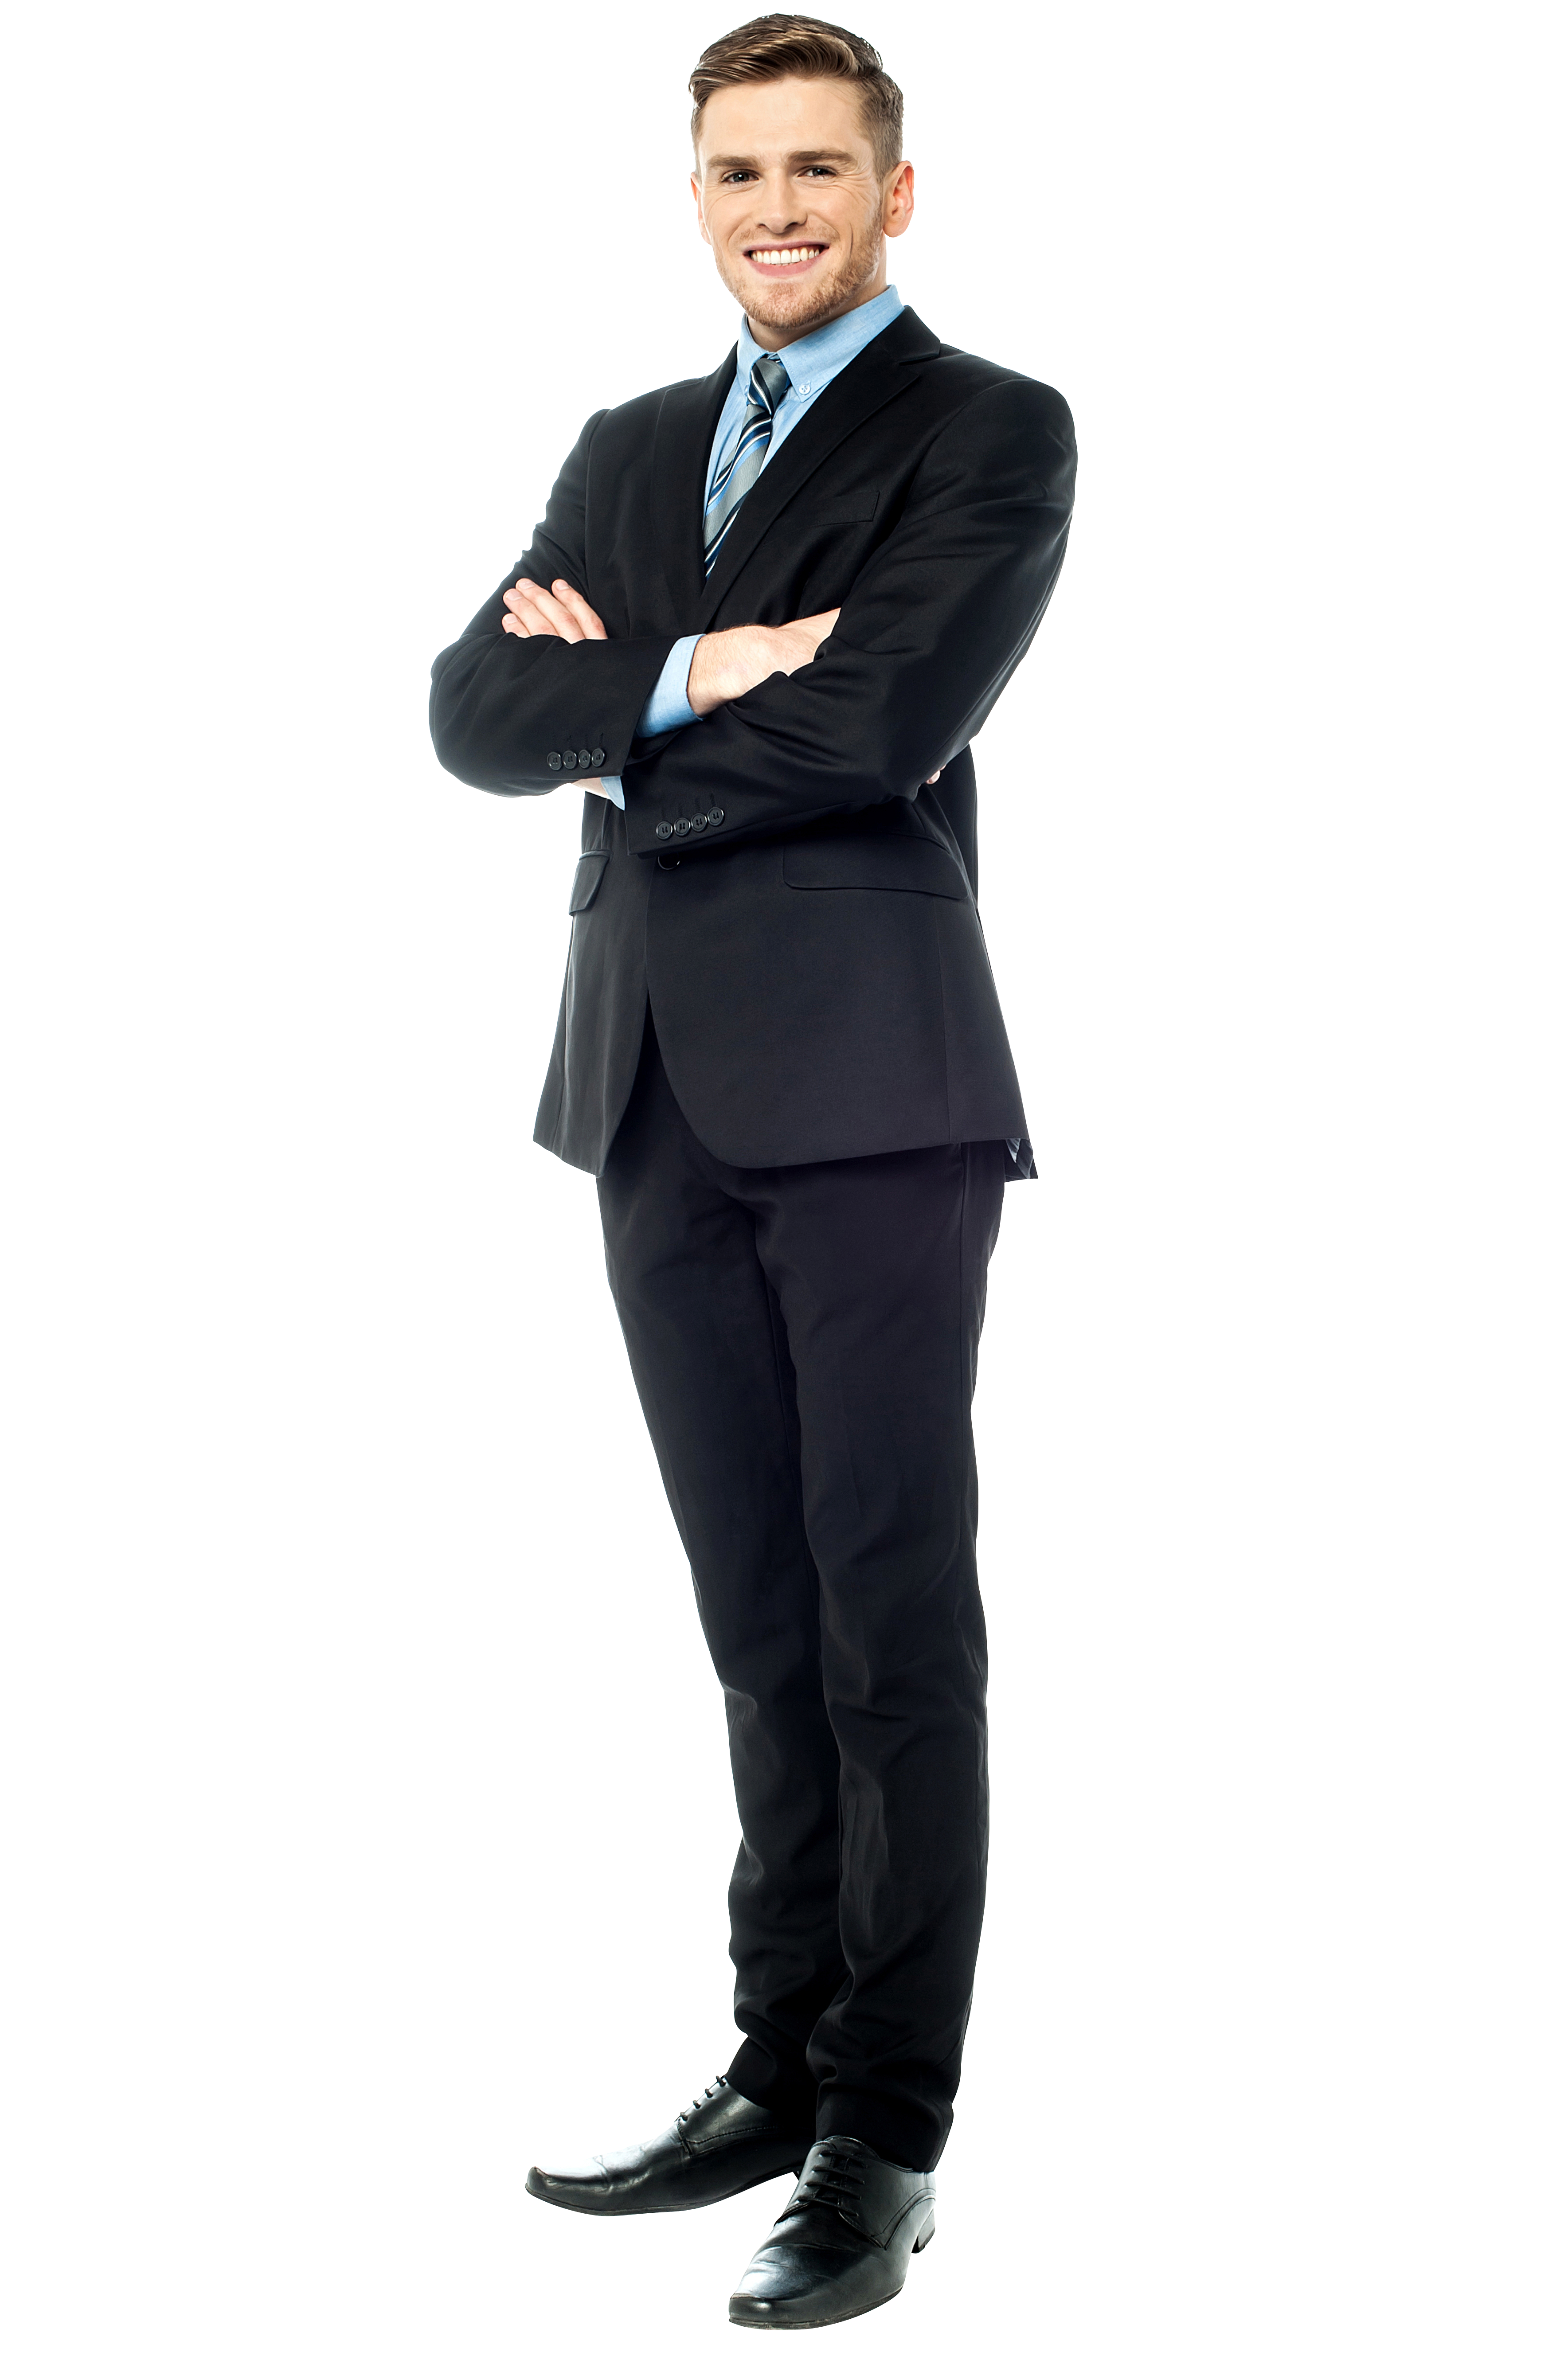 Guy in suit png. Men image purepng free